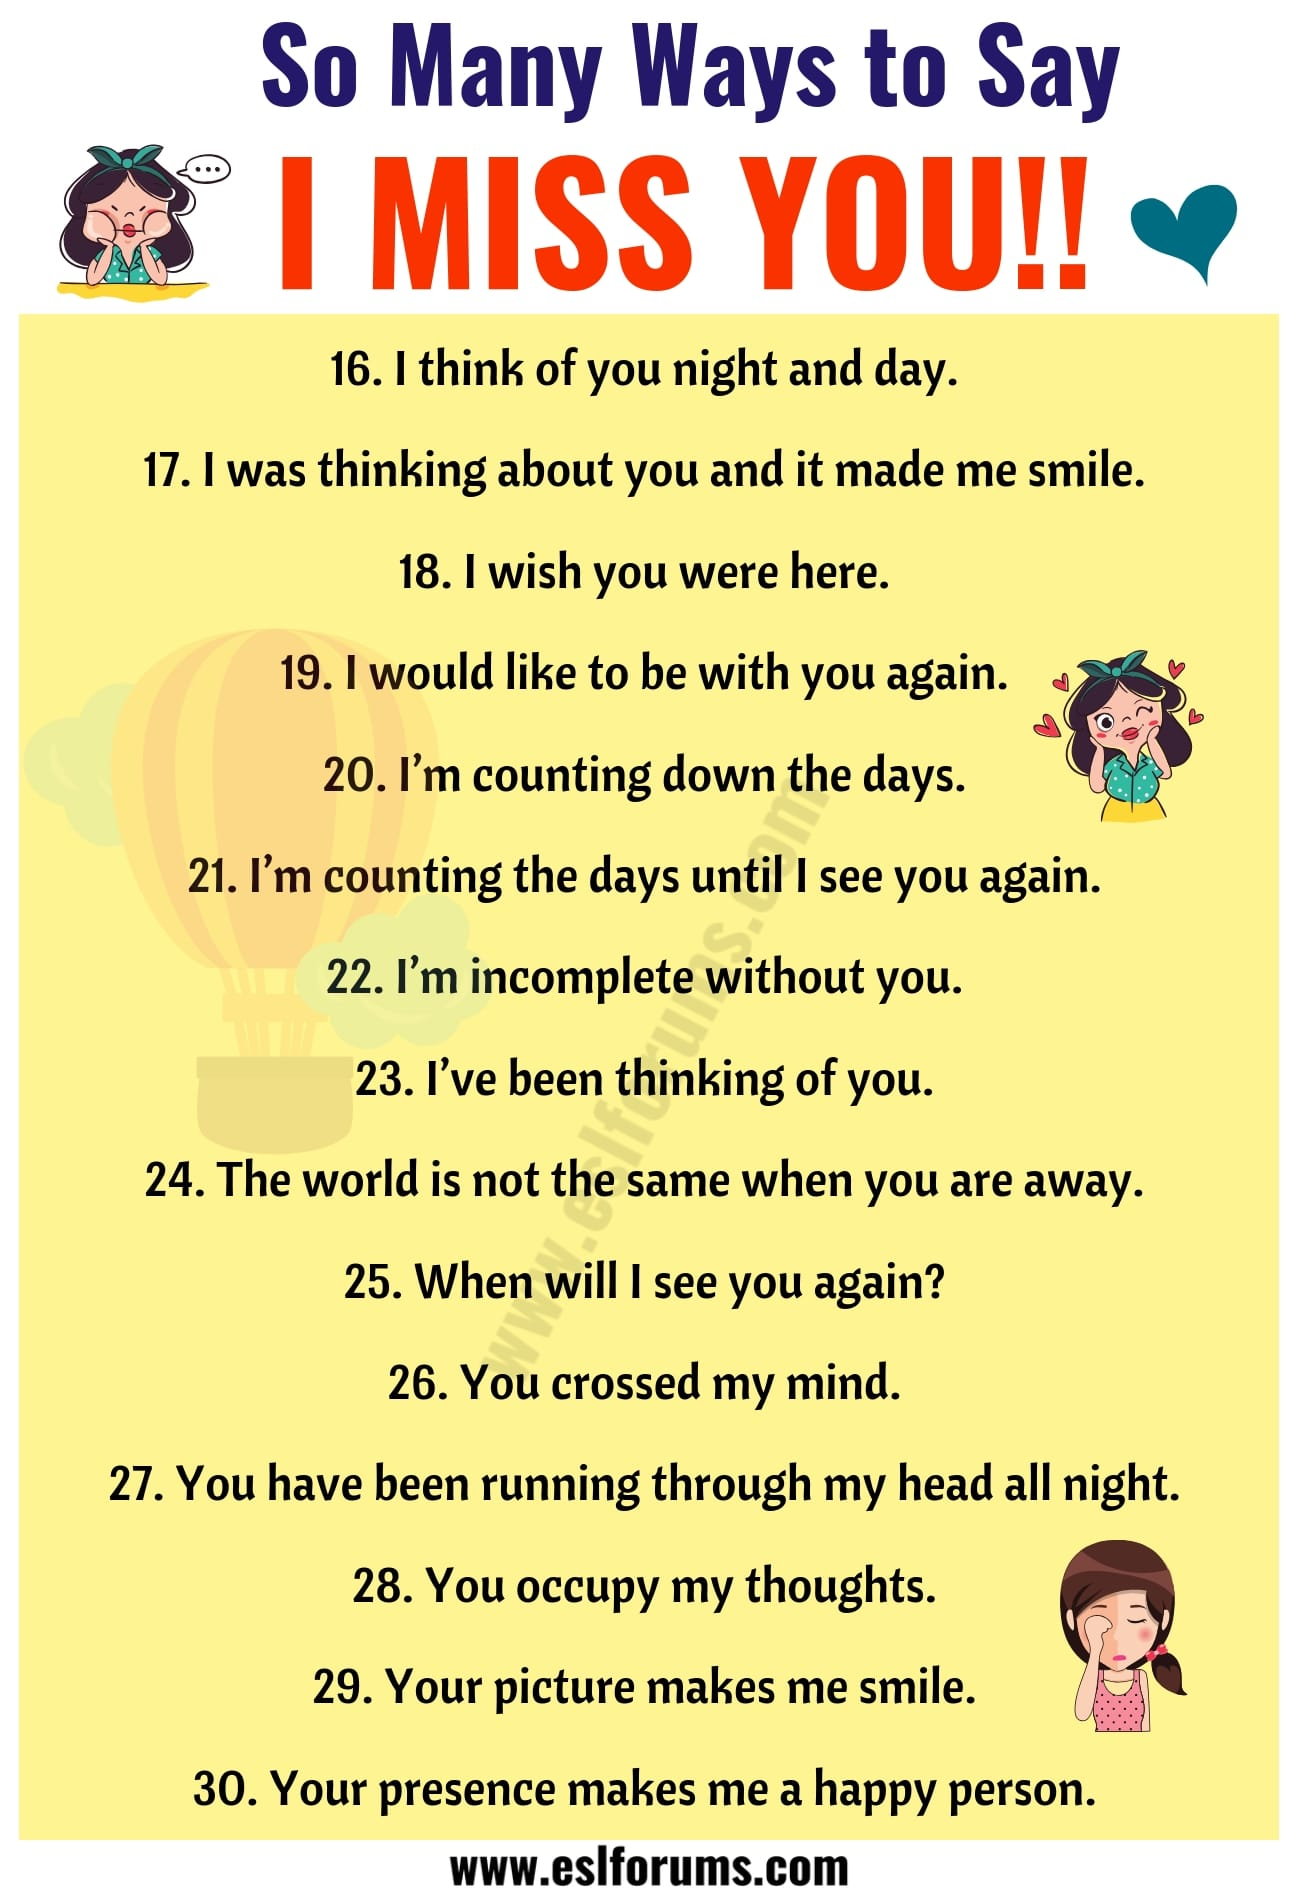 I Miss You Quotes 30 Romantic Ways To Say I Miss You In English